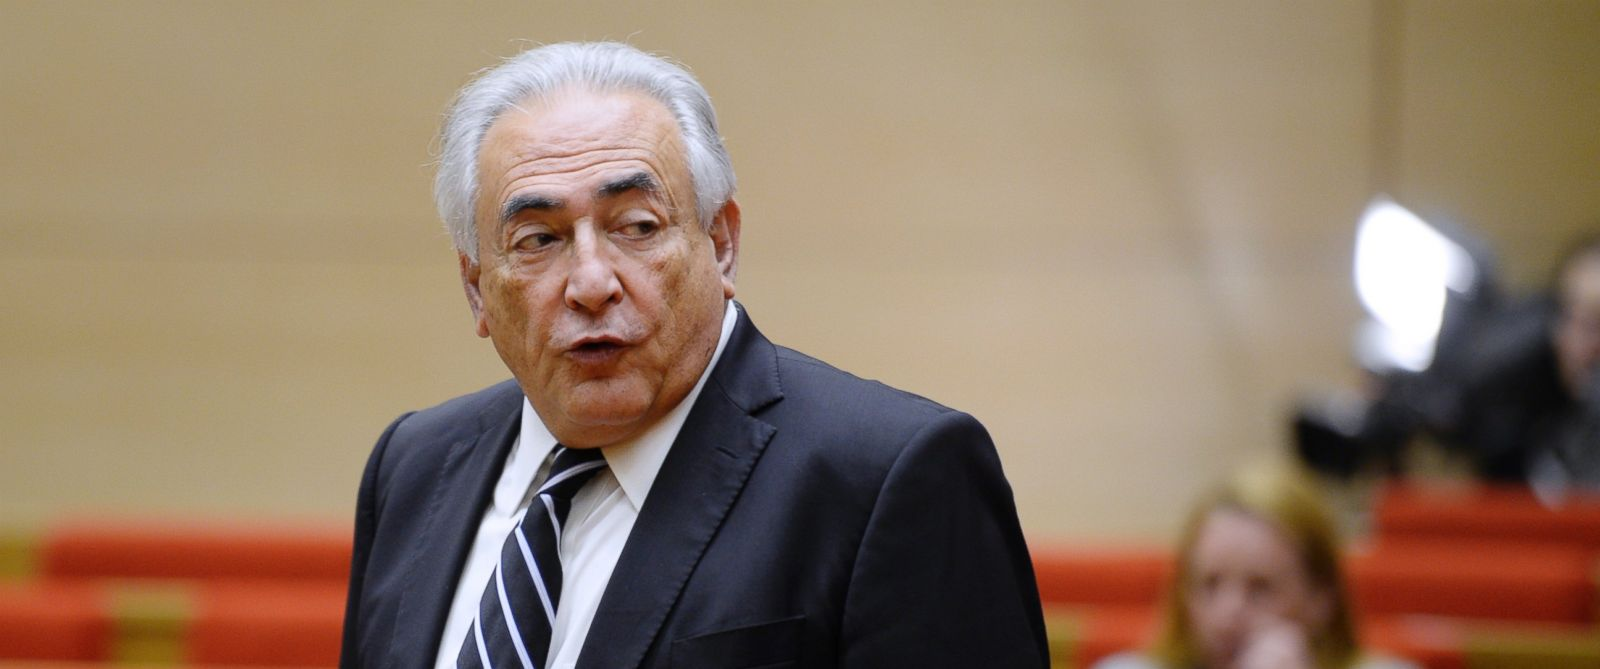 PHOTO: Former IMF chief Dominique Strauss-Kahn is pictured during a hearing before an investigation committee on capital flight at the French Senate in this June 26, 2013 file photo in Paris.